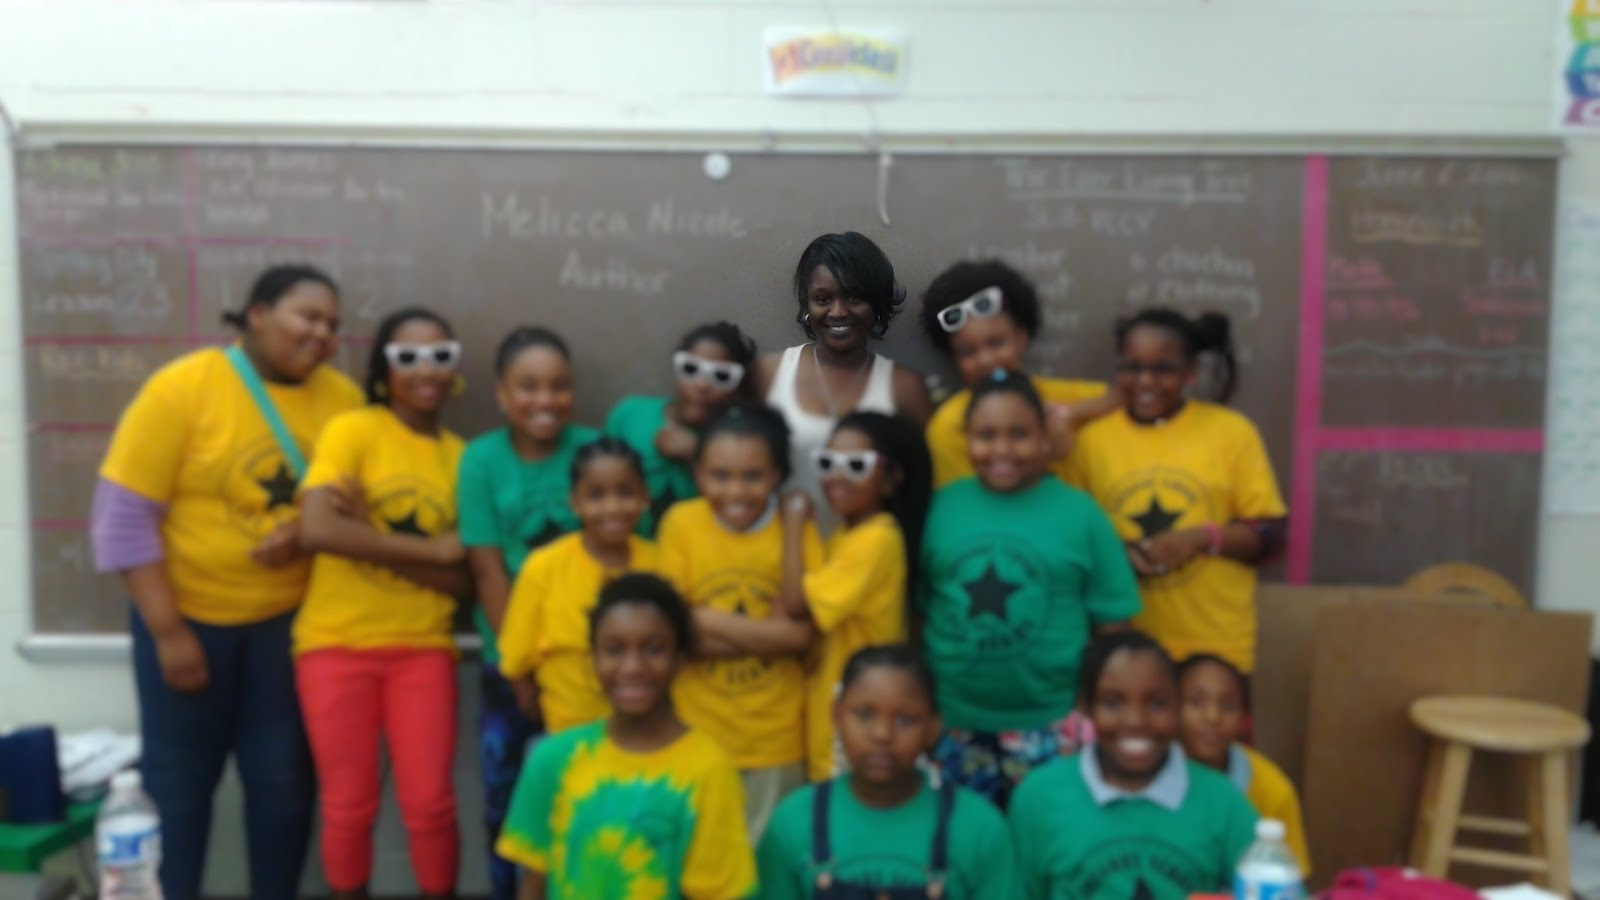 CCFA Trenton Children's Book Festival at Gregory Elementary- 3rd Class